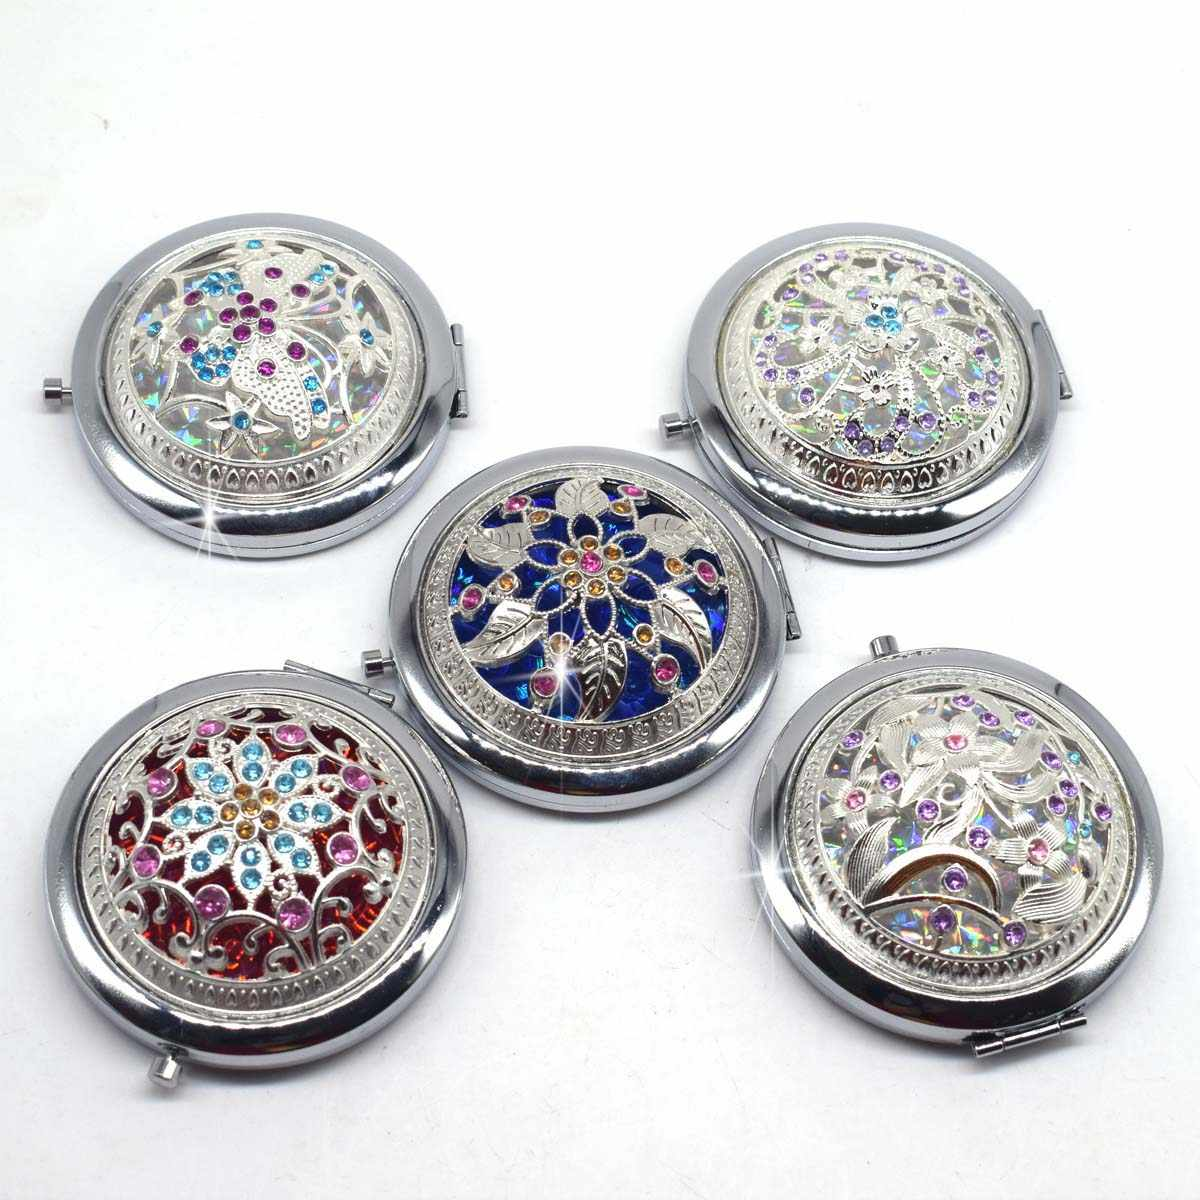 Vintage Silver Hollow Pocket Mirror Mini Women Girls Metal Double-Side Folding Cosmetics Mirrors for Personalized Wedding Gifts